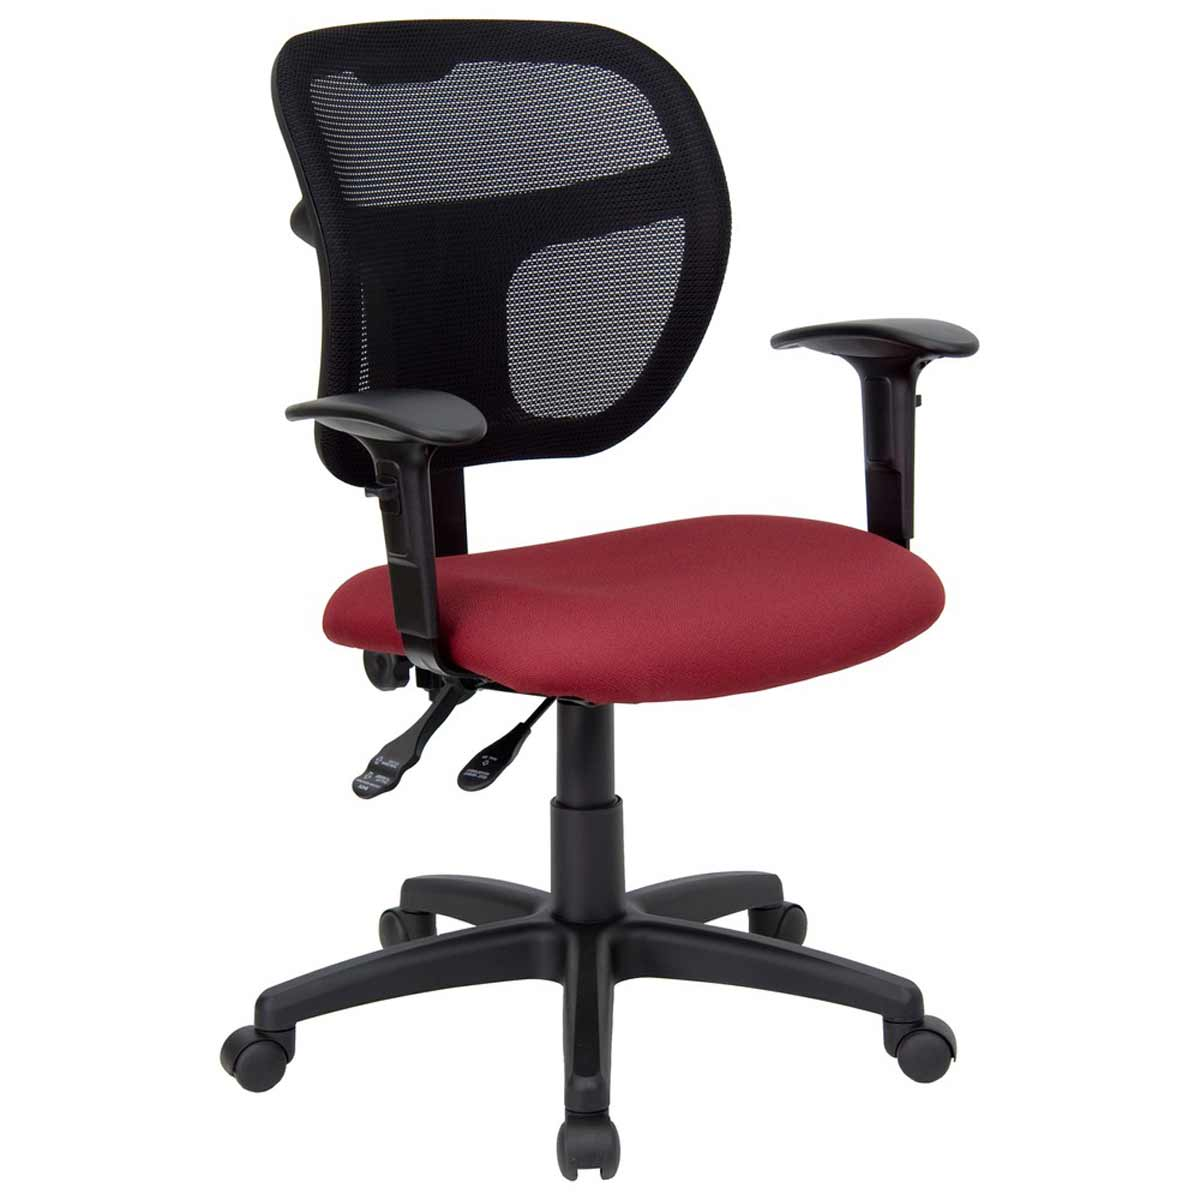 Ergonomic Mesh Computer Chair | Office Furniture